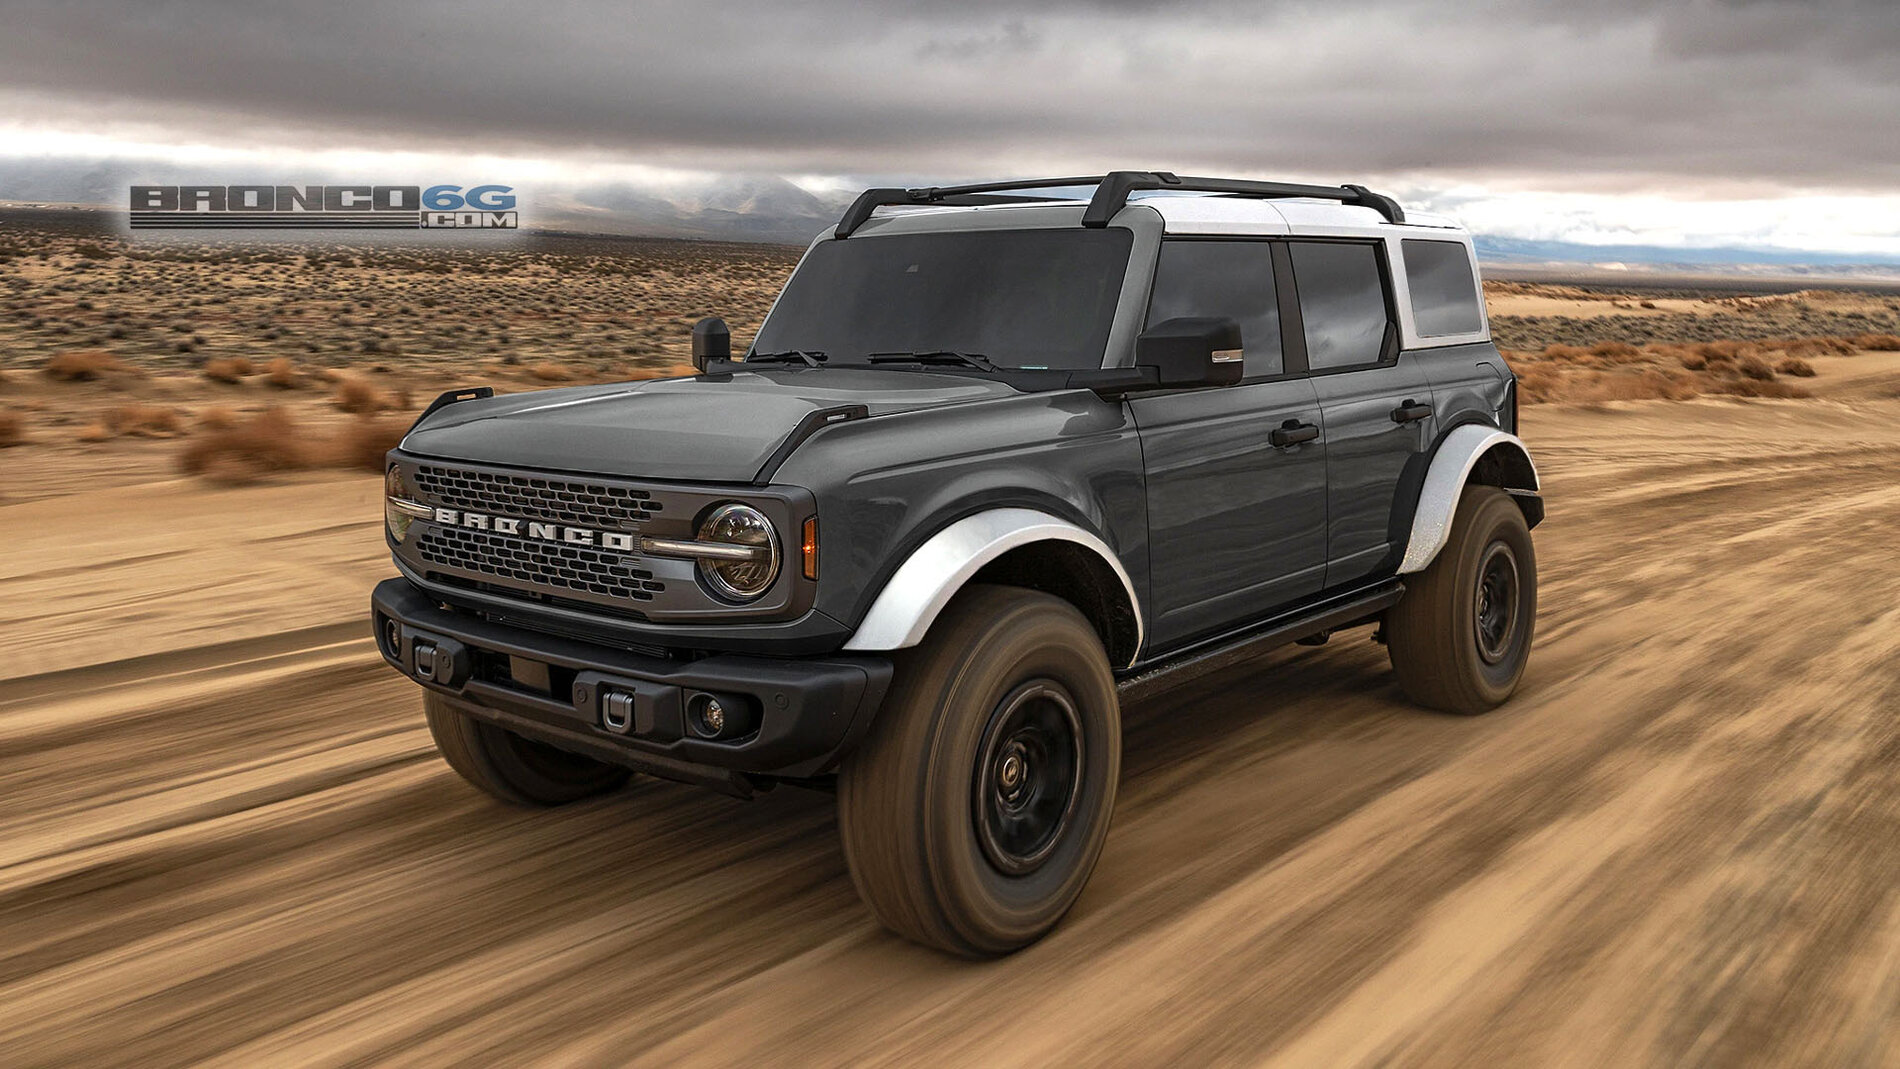 2021 Ford Bronco Sasquatch Carbonized-gray-white-roof-fendersBronco6G.com.jpg